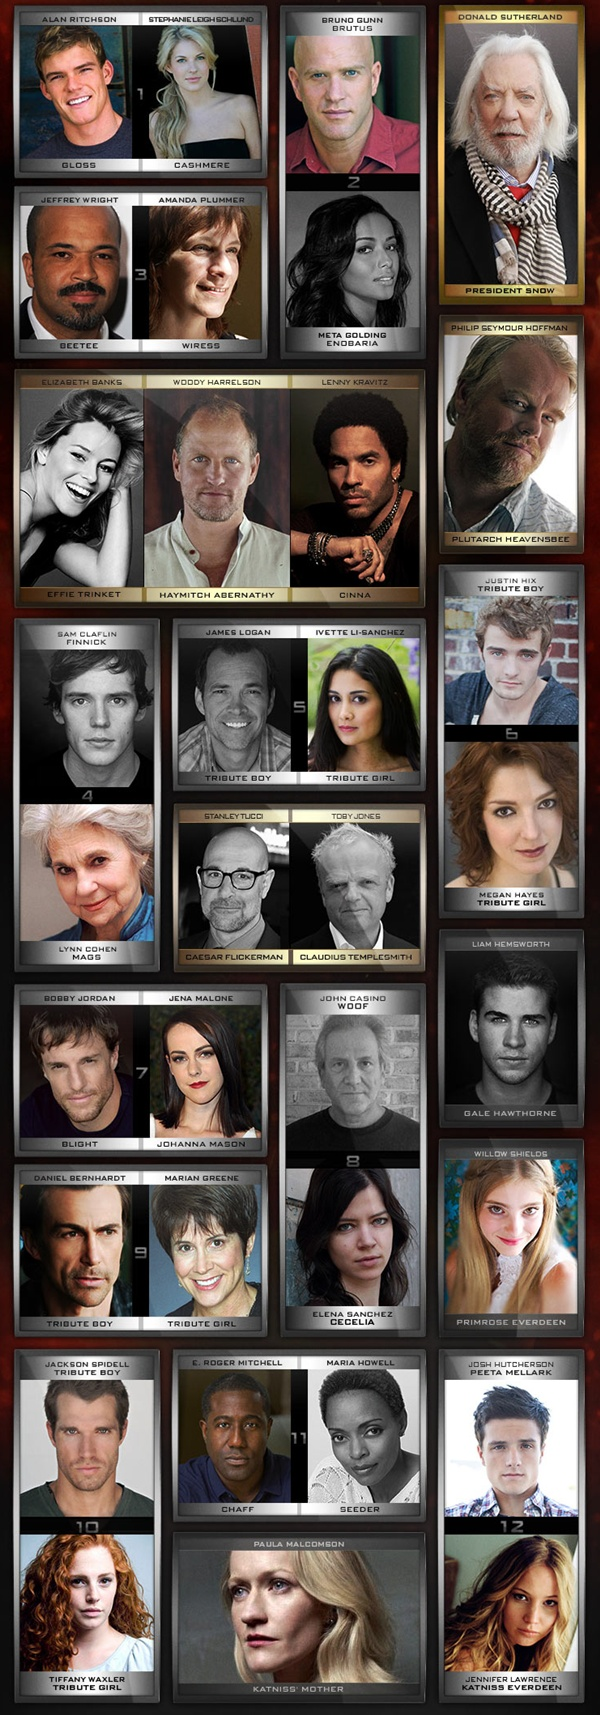 The Hunger Games Catching Fire movie cast. Enobaria, Plutarch, Mags, Wiress, Chaff, and Seeder are perfect. Still getting over the Finnick casting :/